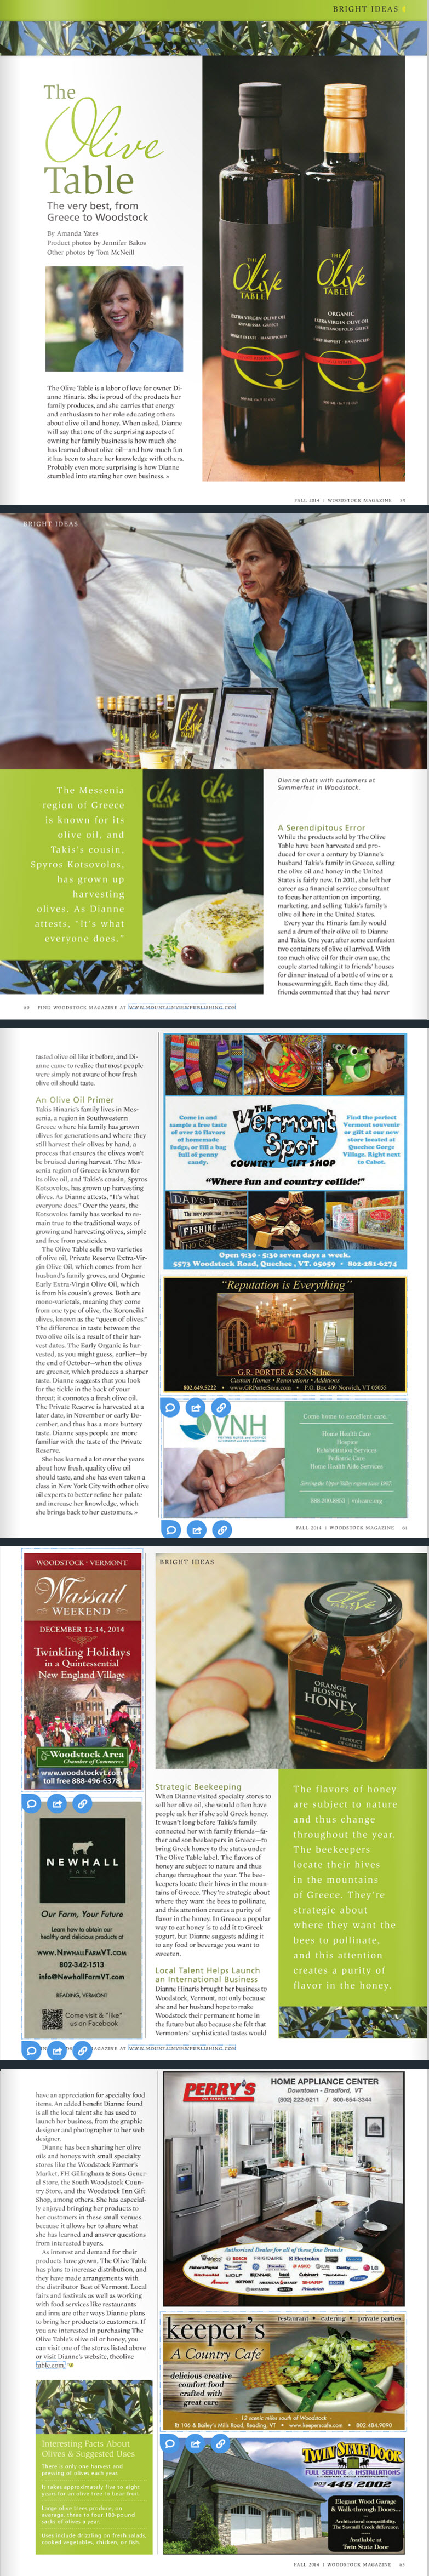 The Olive Table - Woodstock Magazine Article